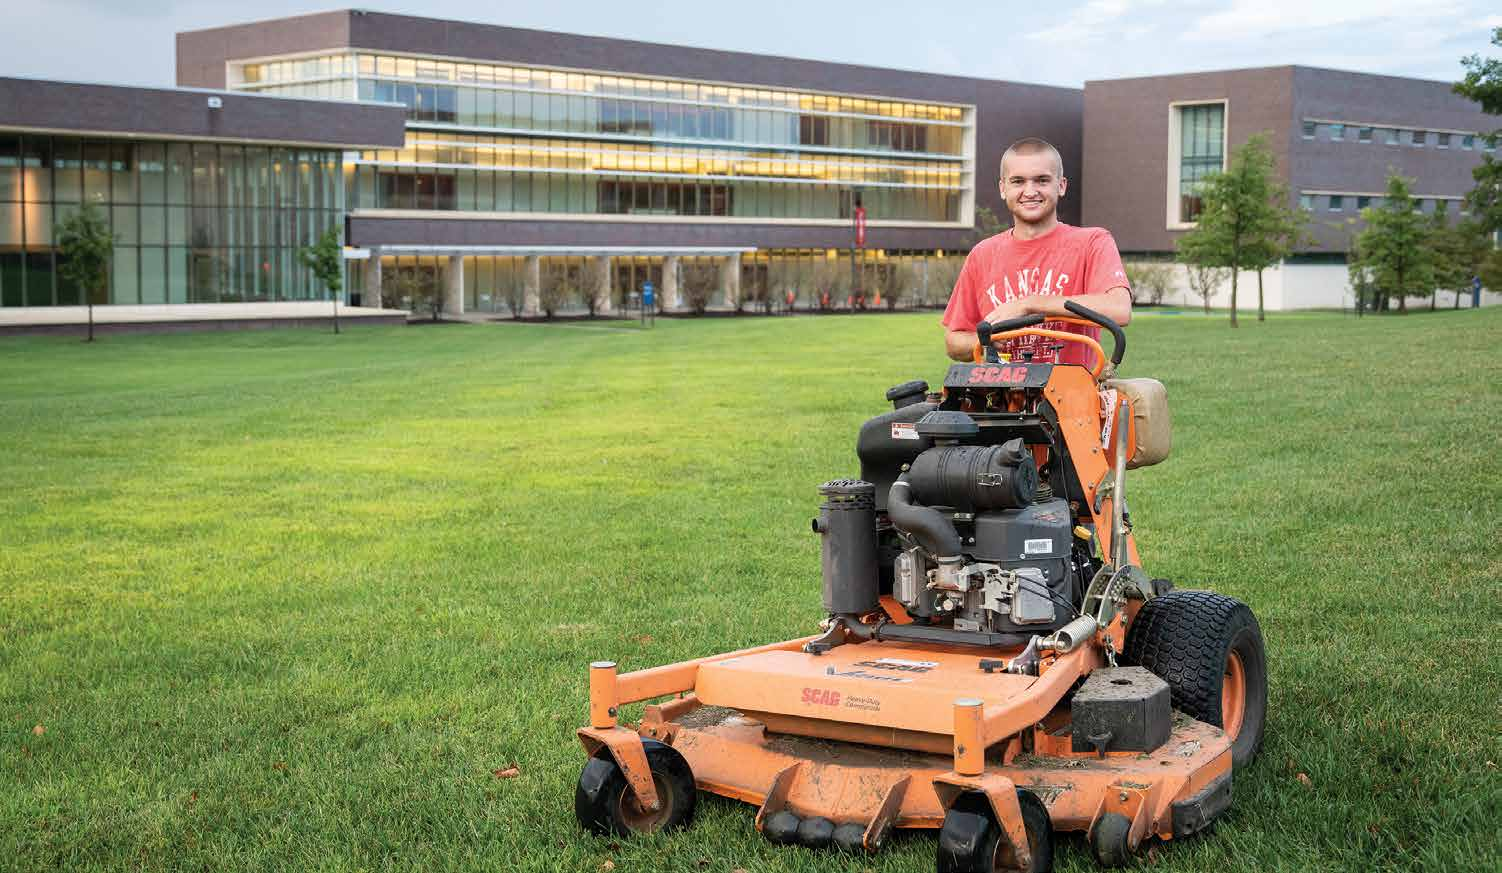 By opting to enroll in Degree in 3, an accelerated degree path at KU Edwards Campus, Eric Fecteau can devote more time to his lawncare business while earning his undergraduate degree. Photo by Steve Puppe.